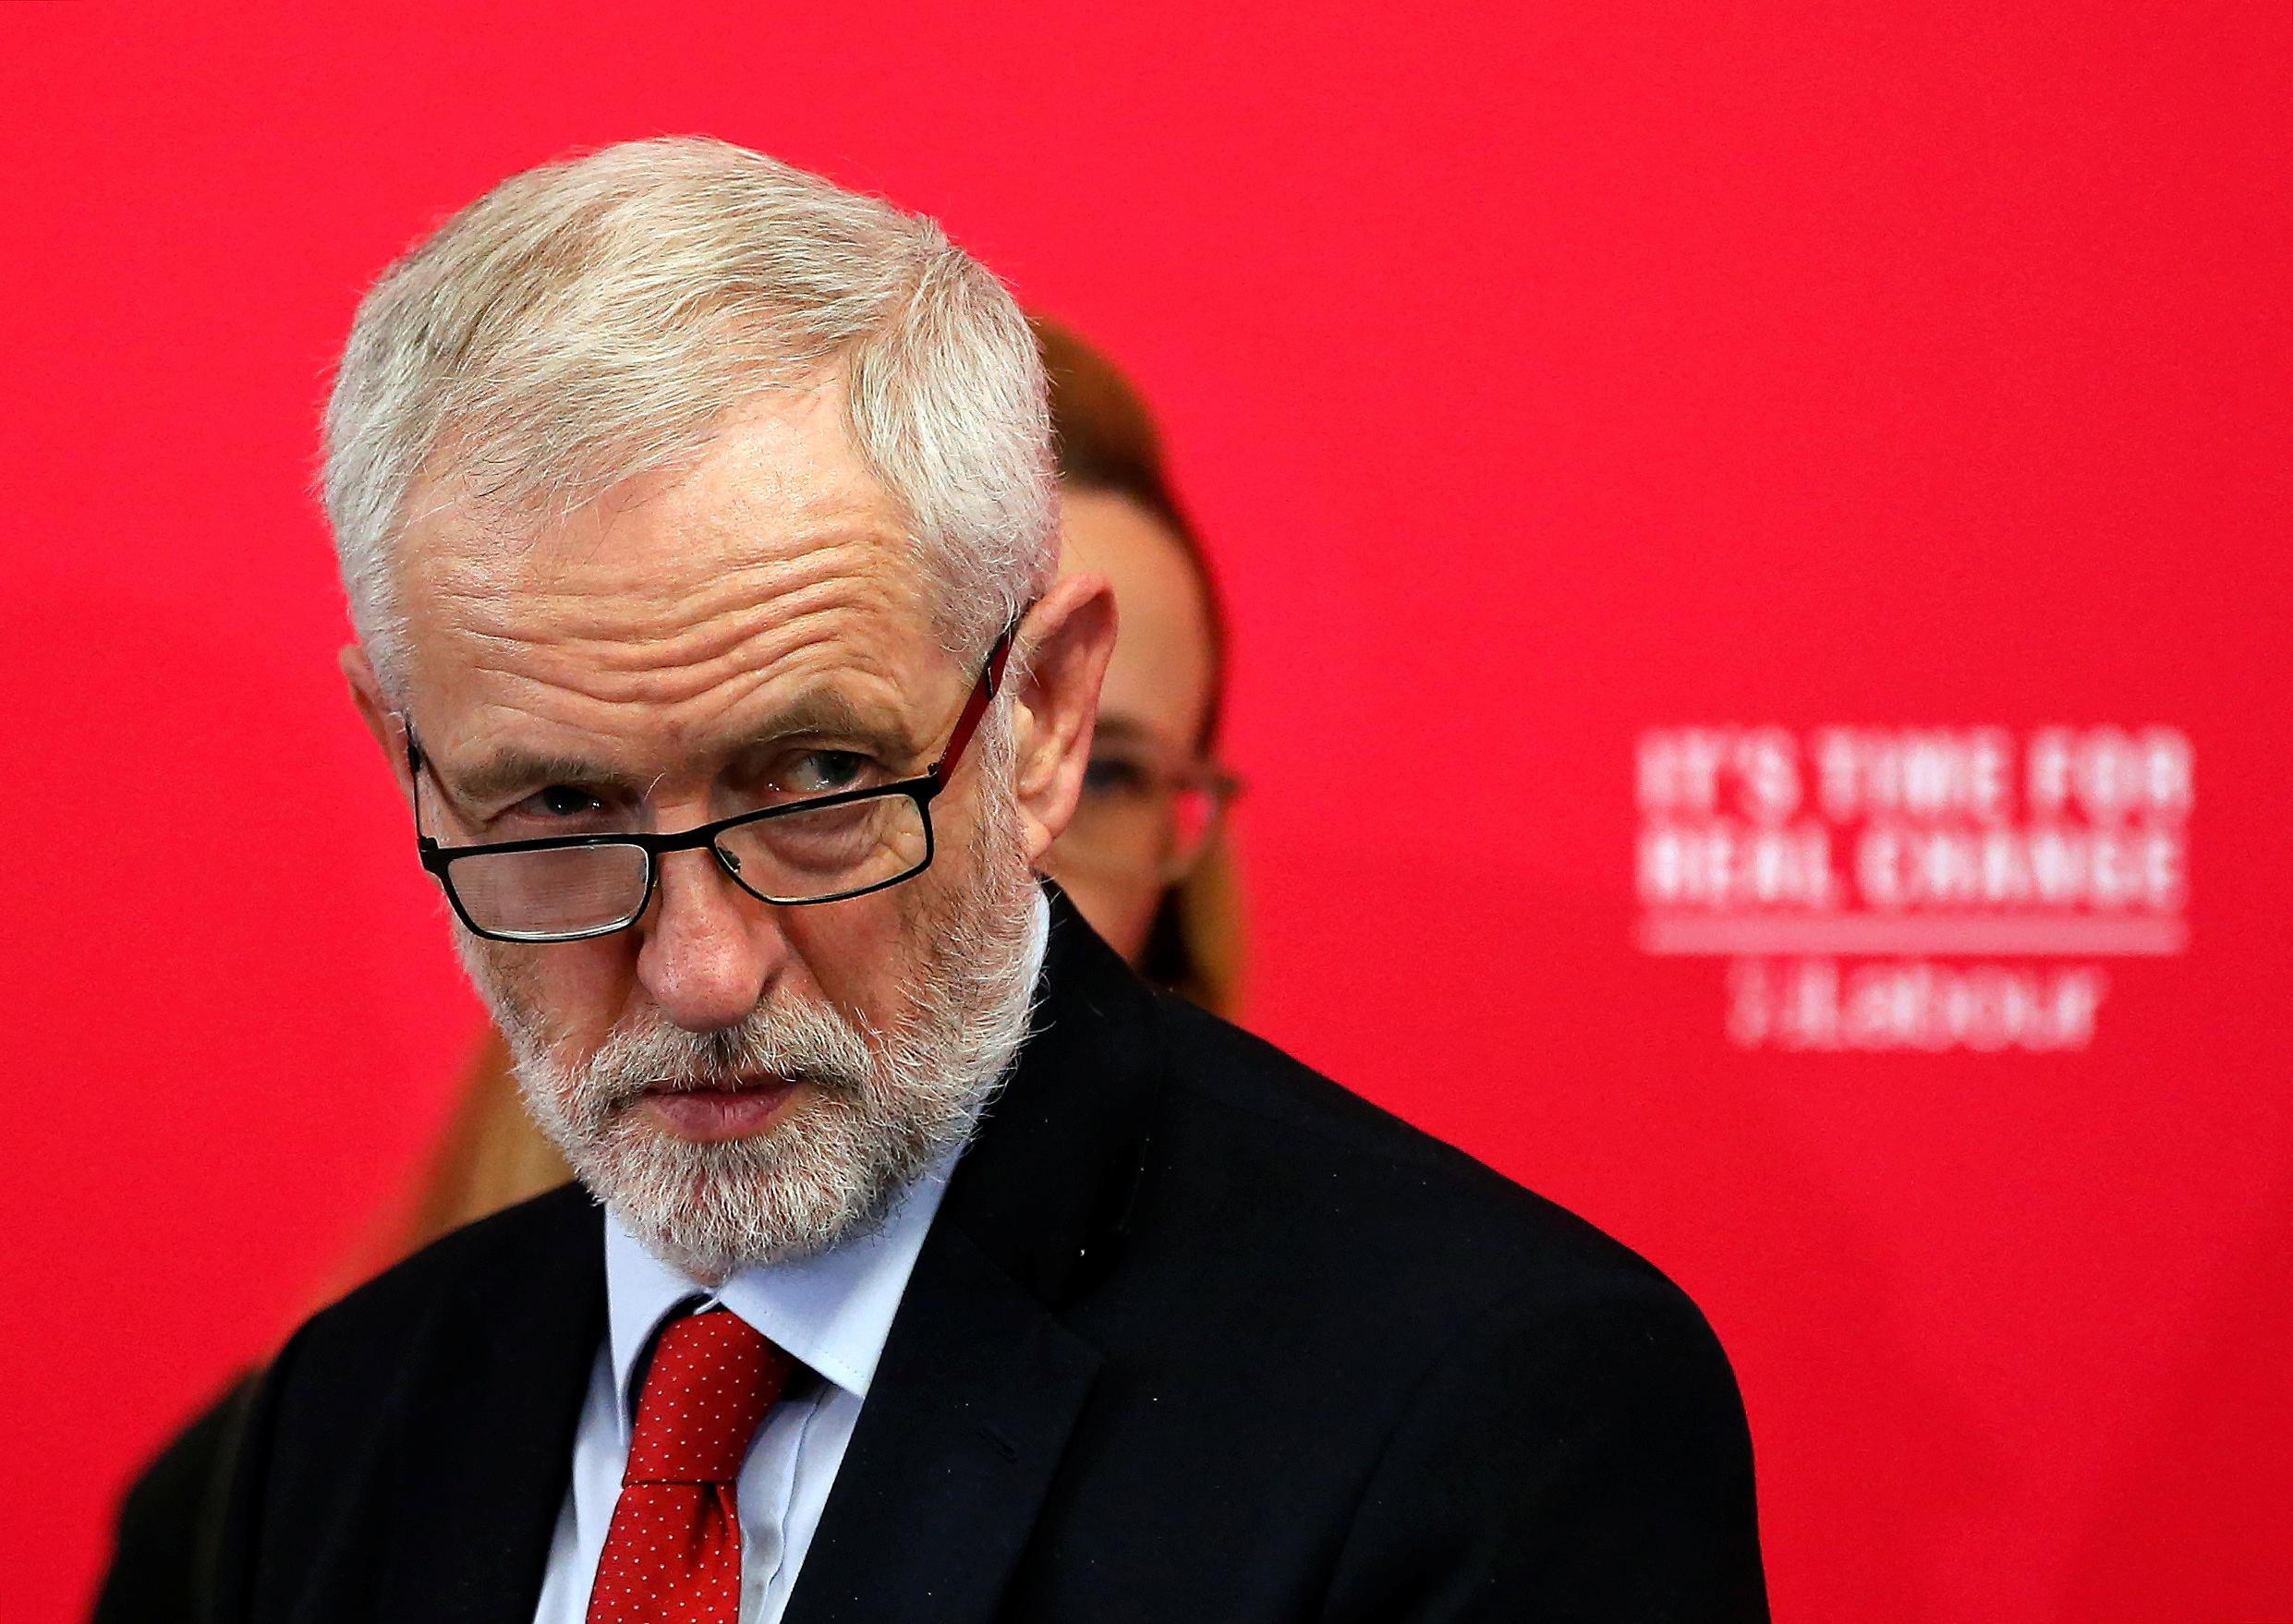 Corbyn's BT plans would be illegal under EU law, Conservatives say